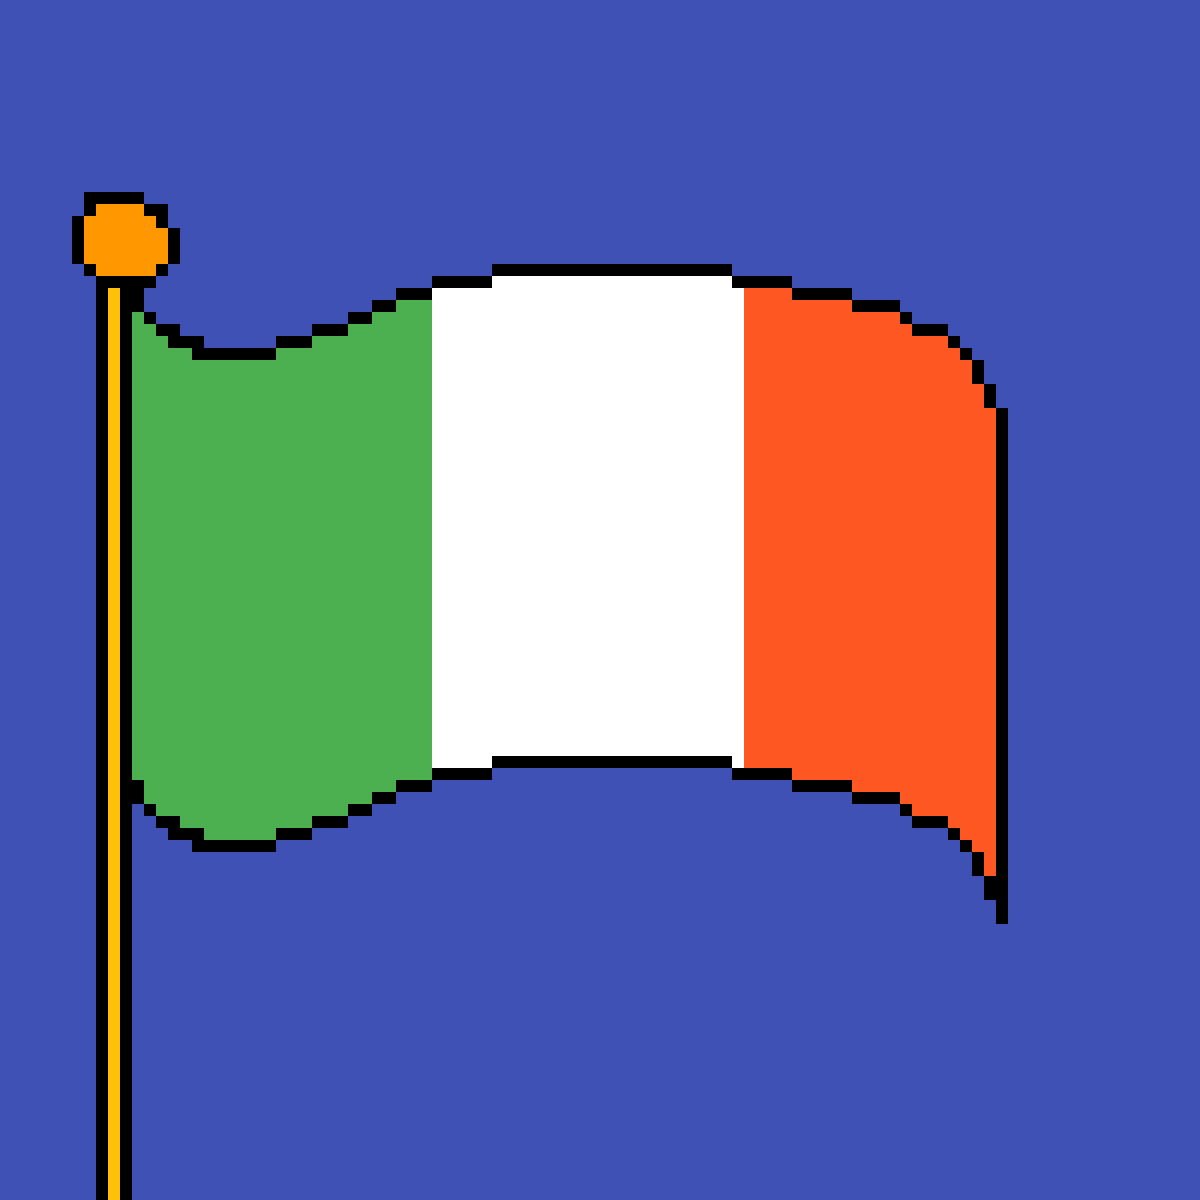 The flag of Ireland by poison-darts317